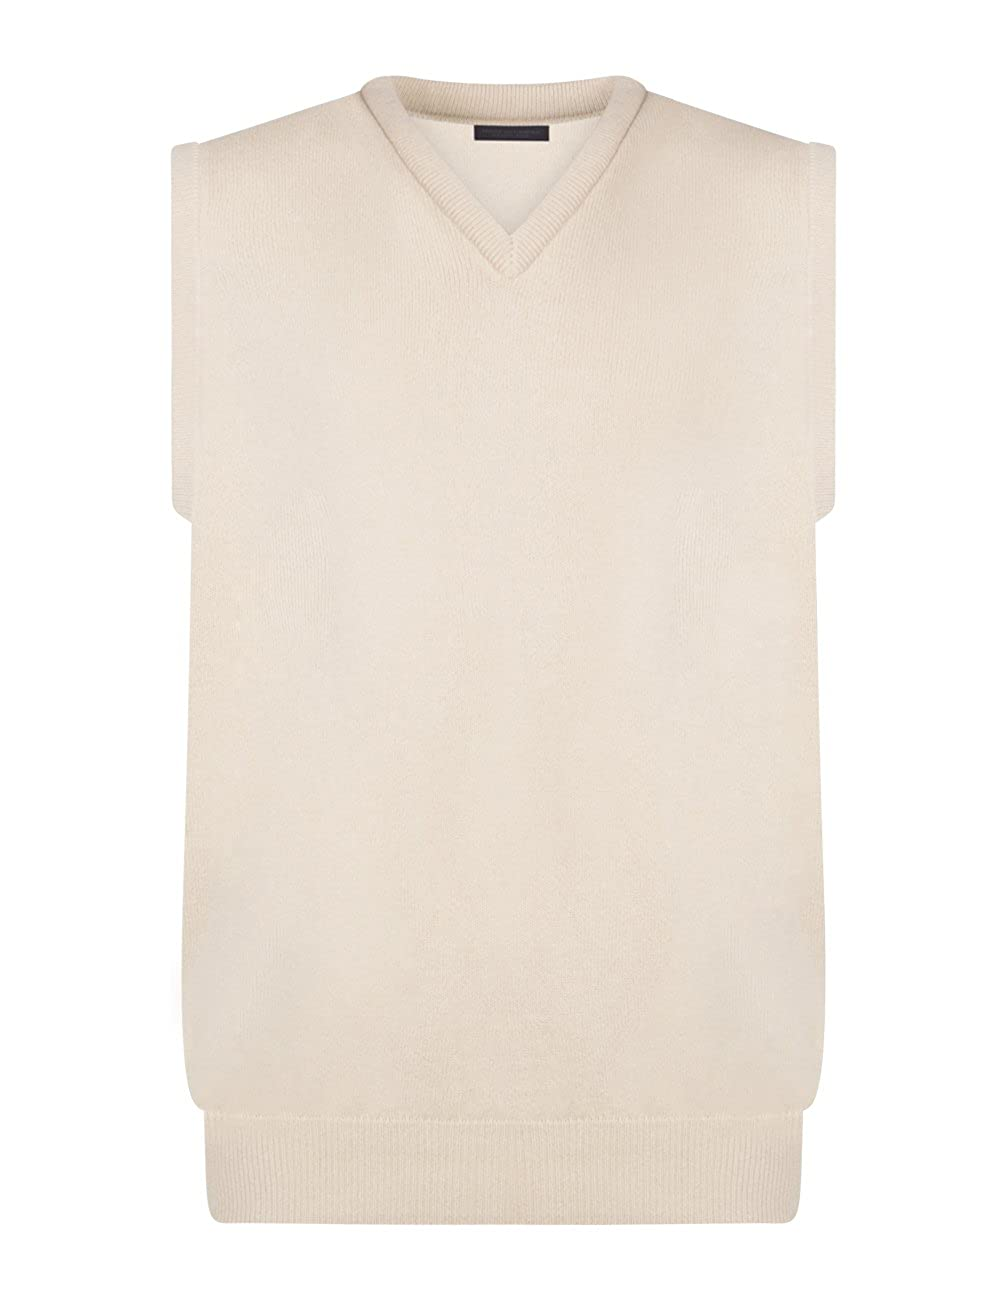 Great and British Knitwear Mens 100/% Lambswool Plain V-Neck Sweater Vest